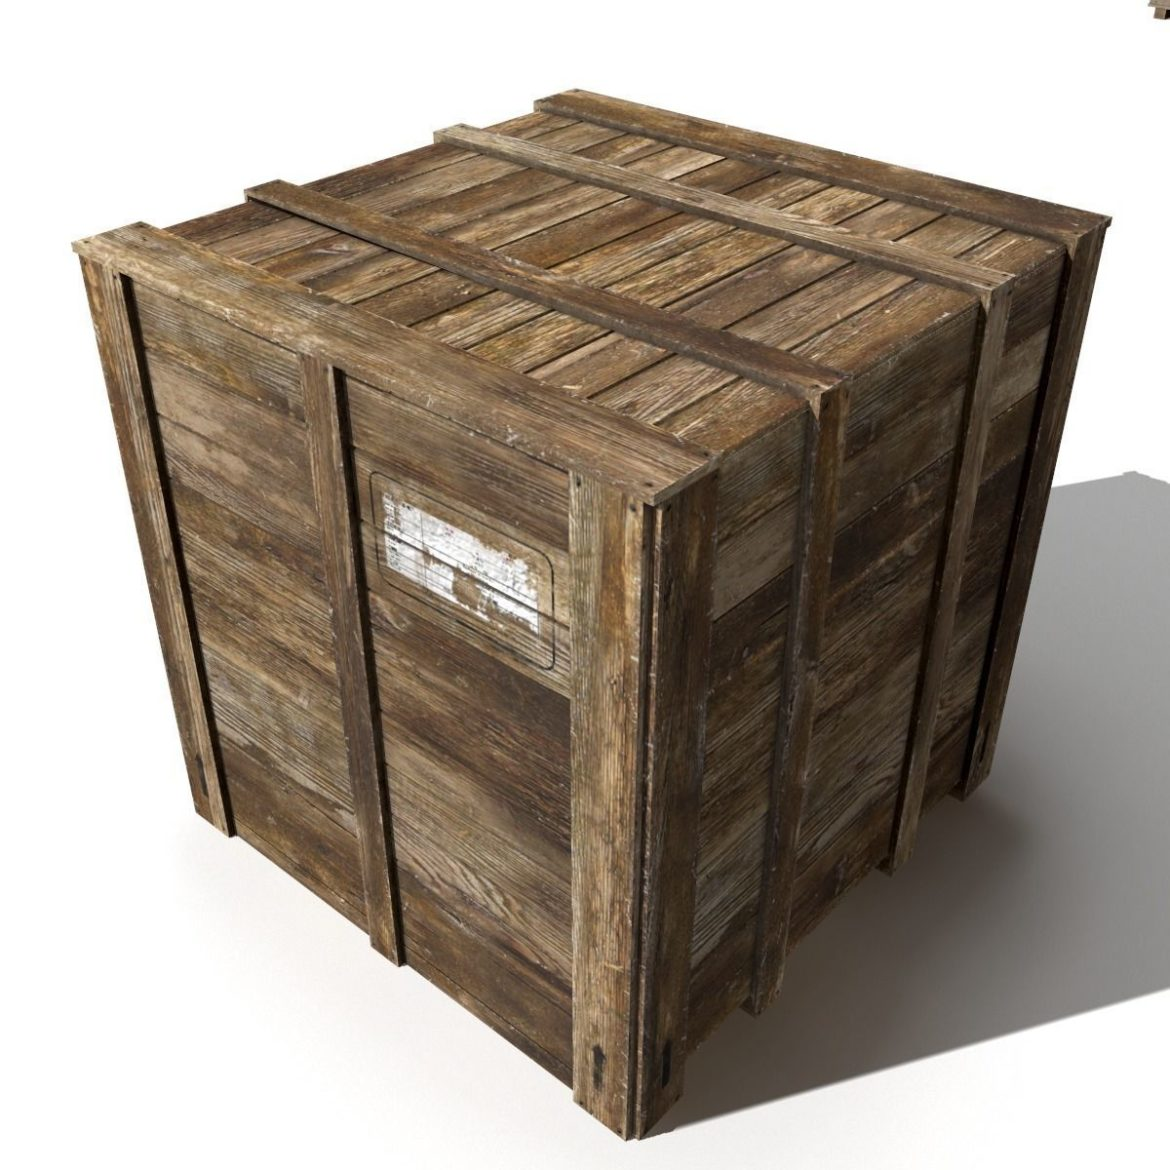 transport crates pack 3 3d model fbx obj 319443